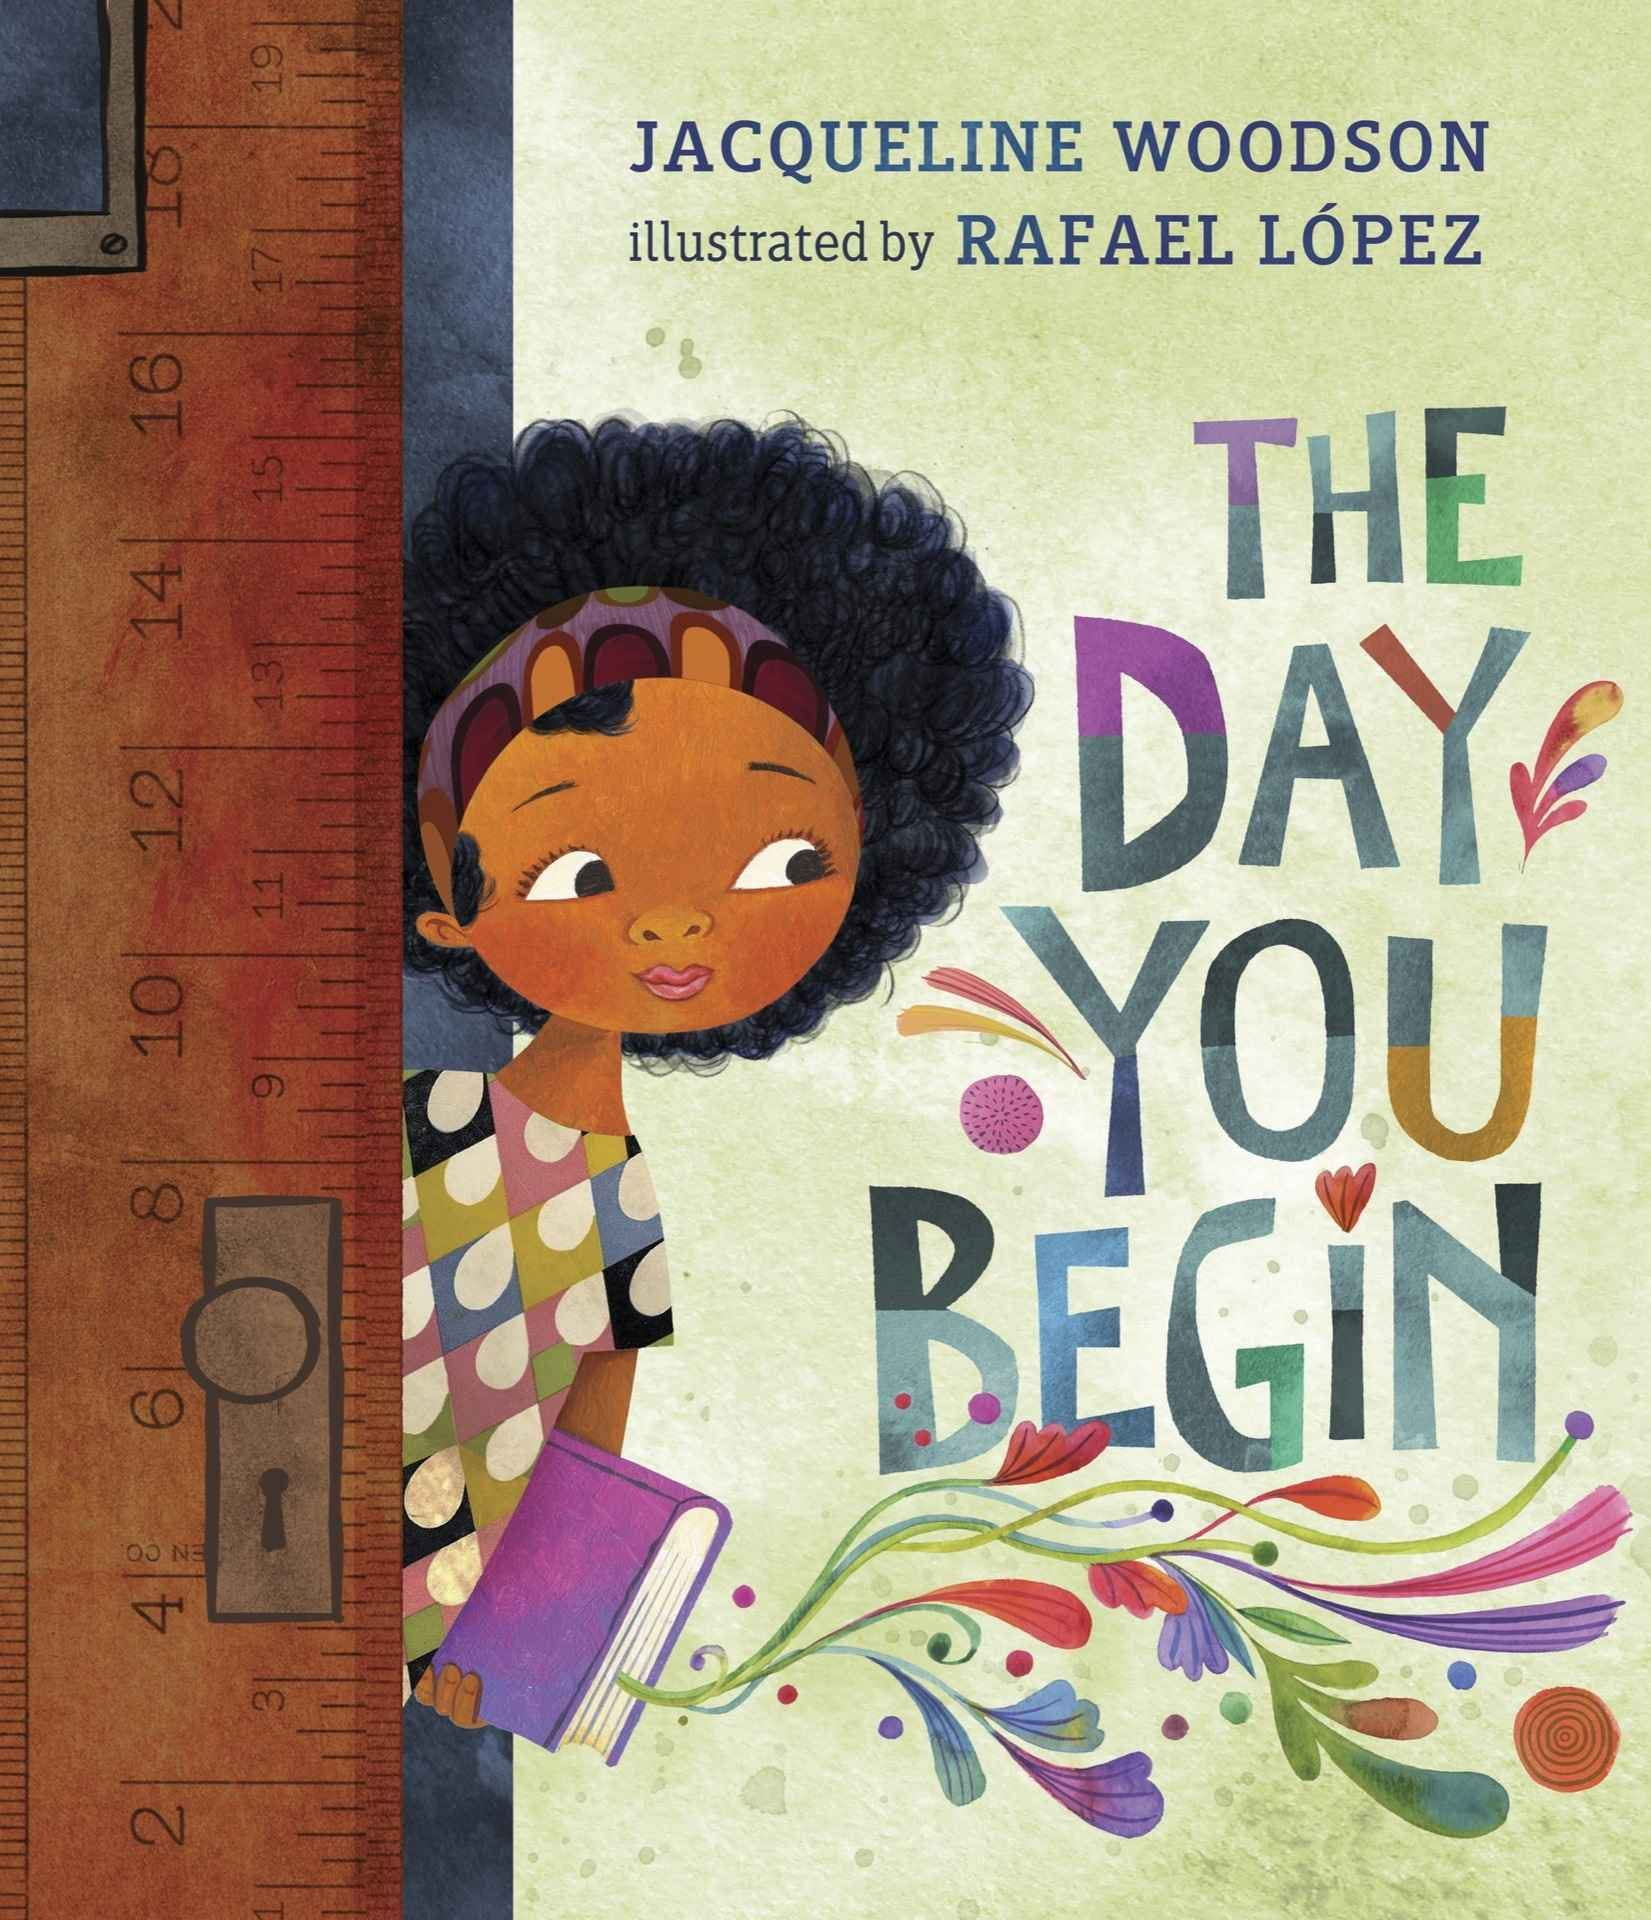 A young, black girl peeks into the classroom on the first day of school